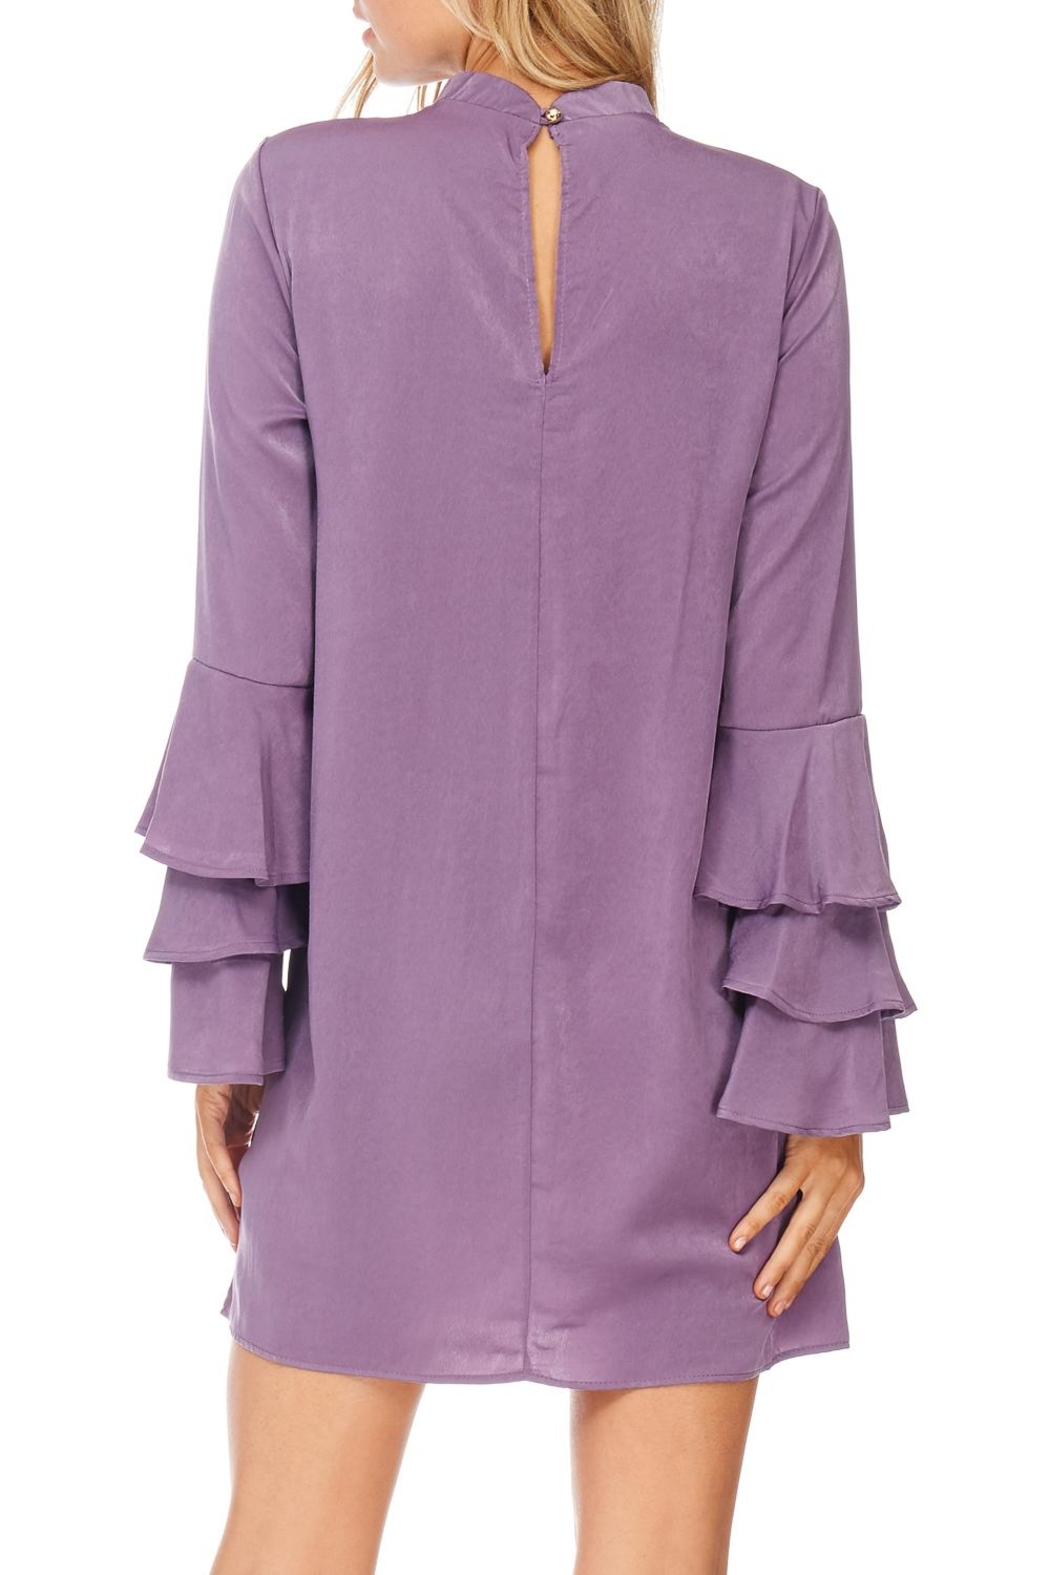 Everly Plum Silky Tiered Sleeve Dress - Back Cropped Image